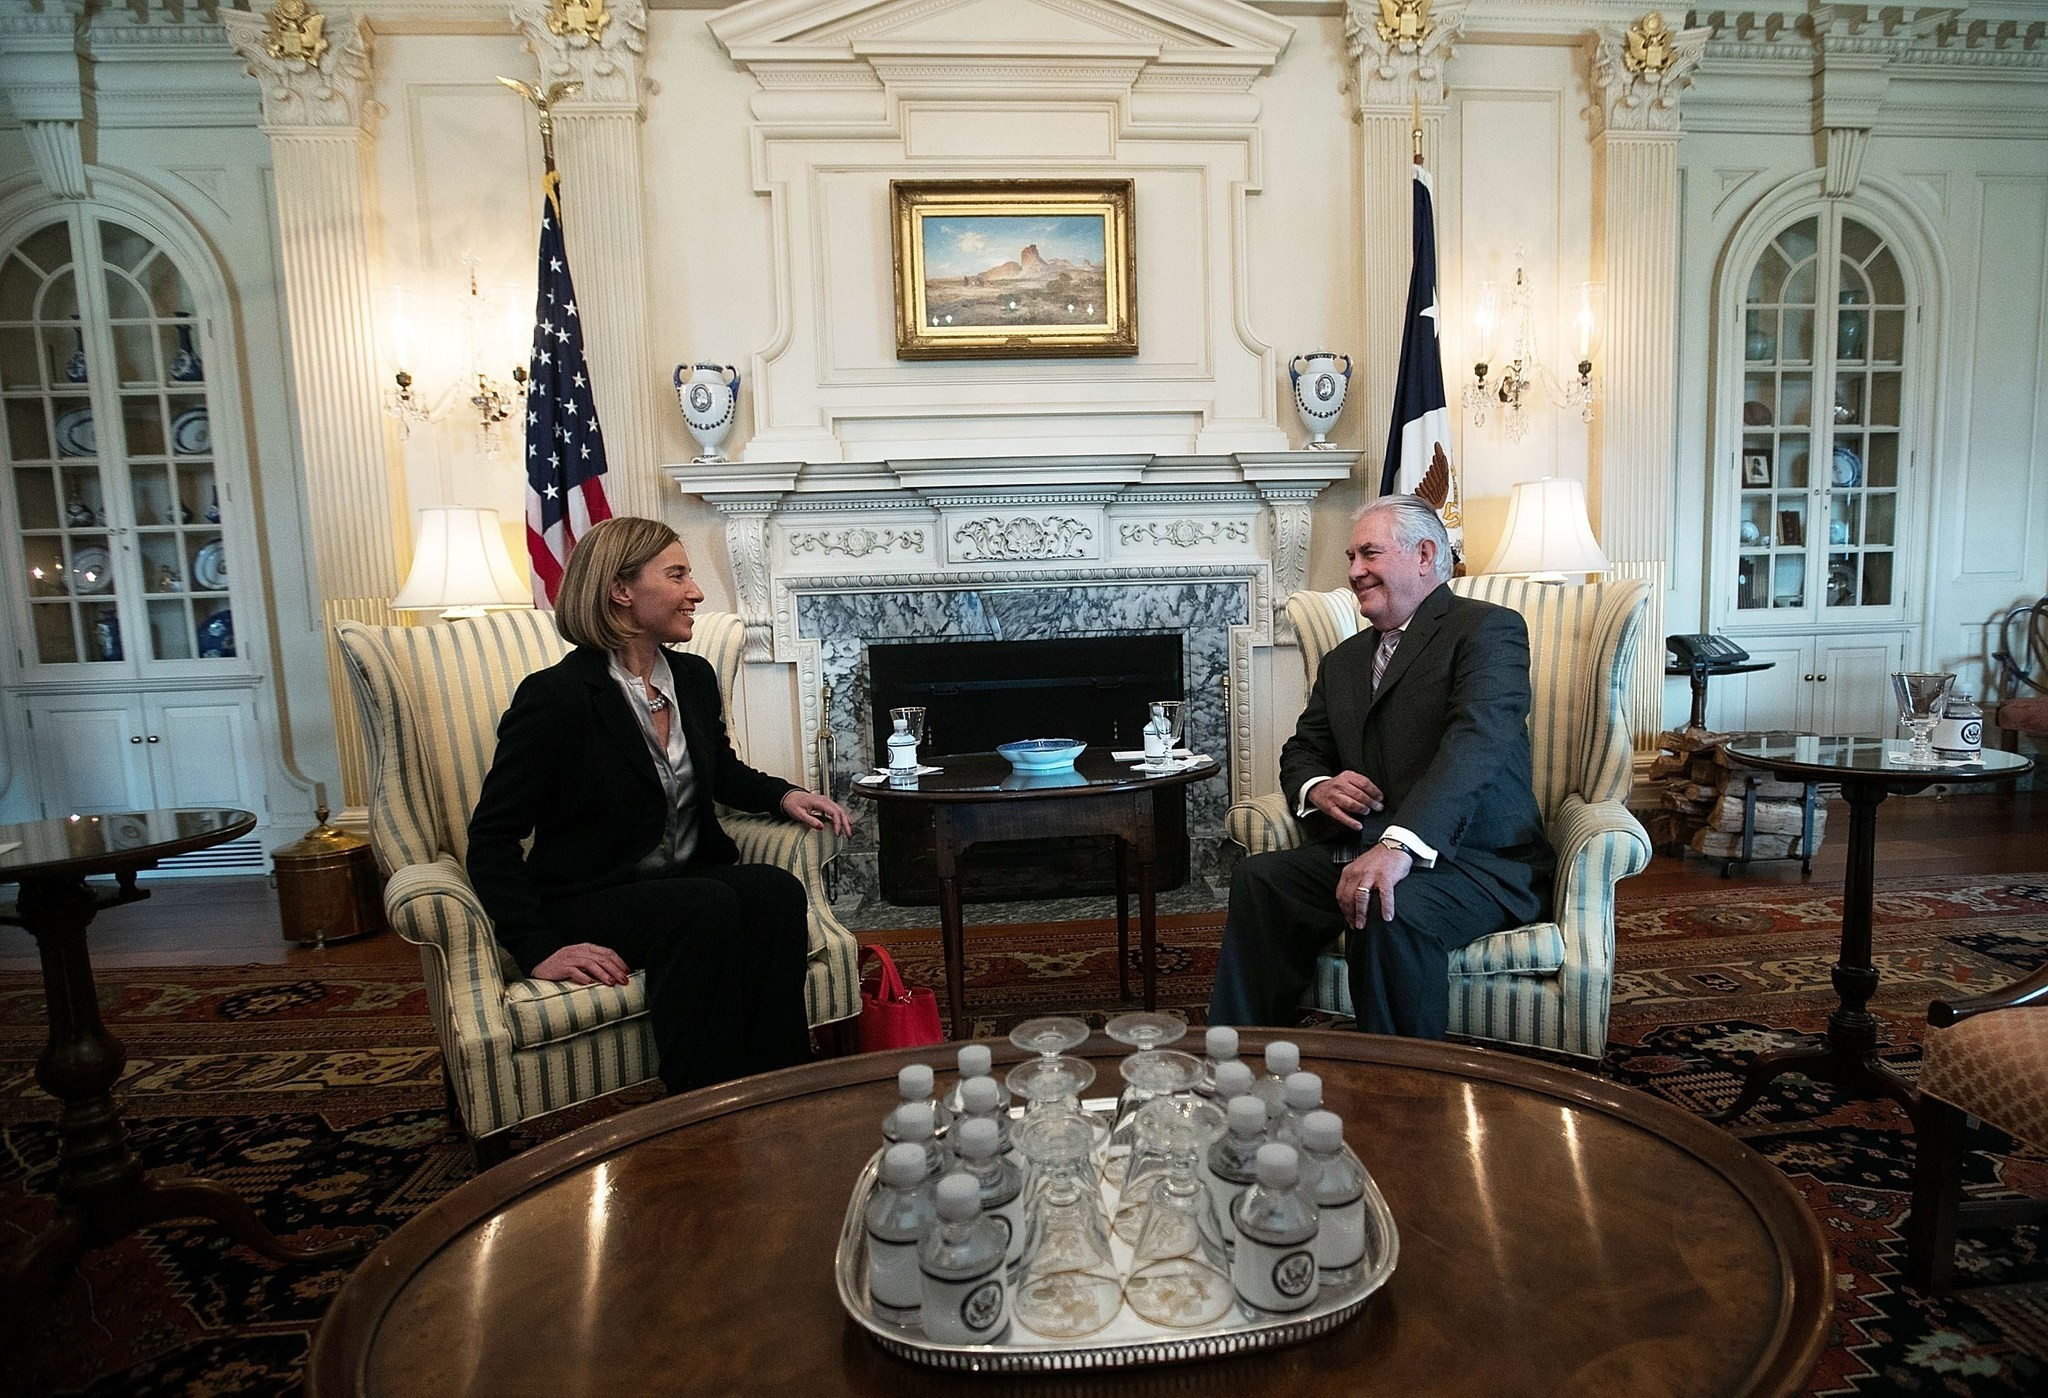 U.S. Secretary of State Rex Tillerson (R) meets with European Union High Representative Federica Mogherini (L) at the State Department February 9, 2017 in Washington, DC. (AFP Photo)